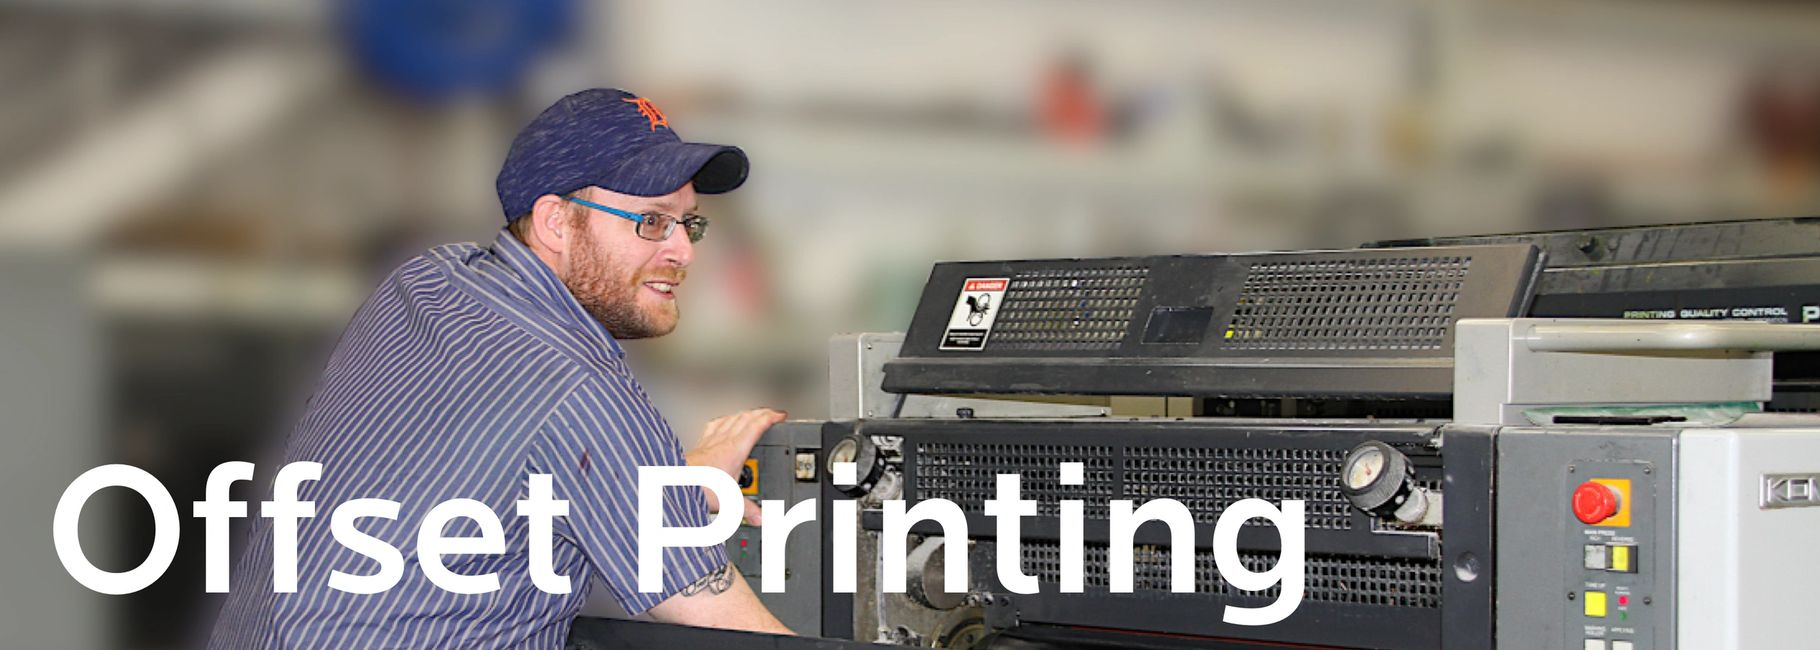 Offset Printing - ULitho Commercial and Custom Printing - Ann Arbor and Southeast Michigan